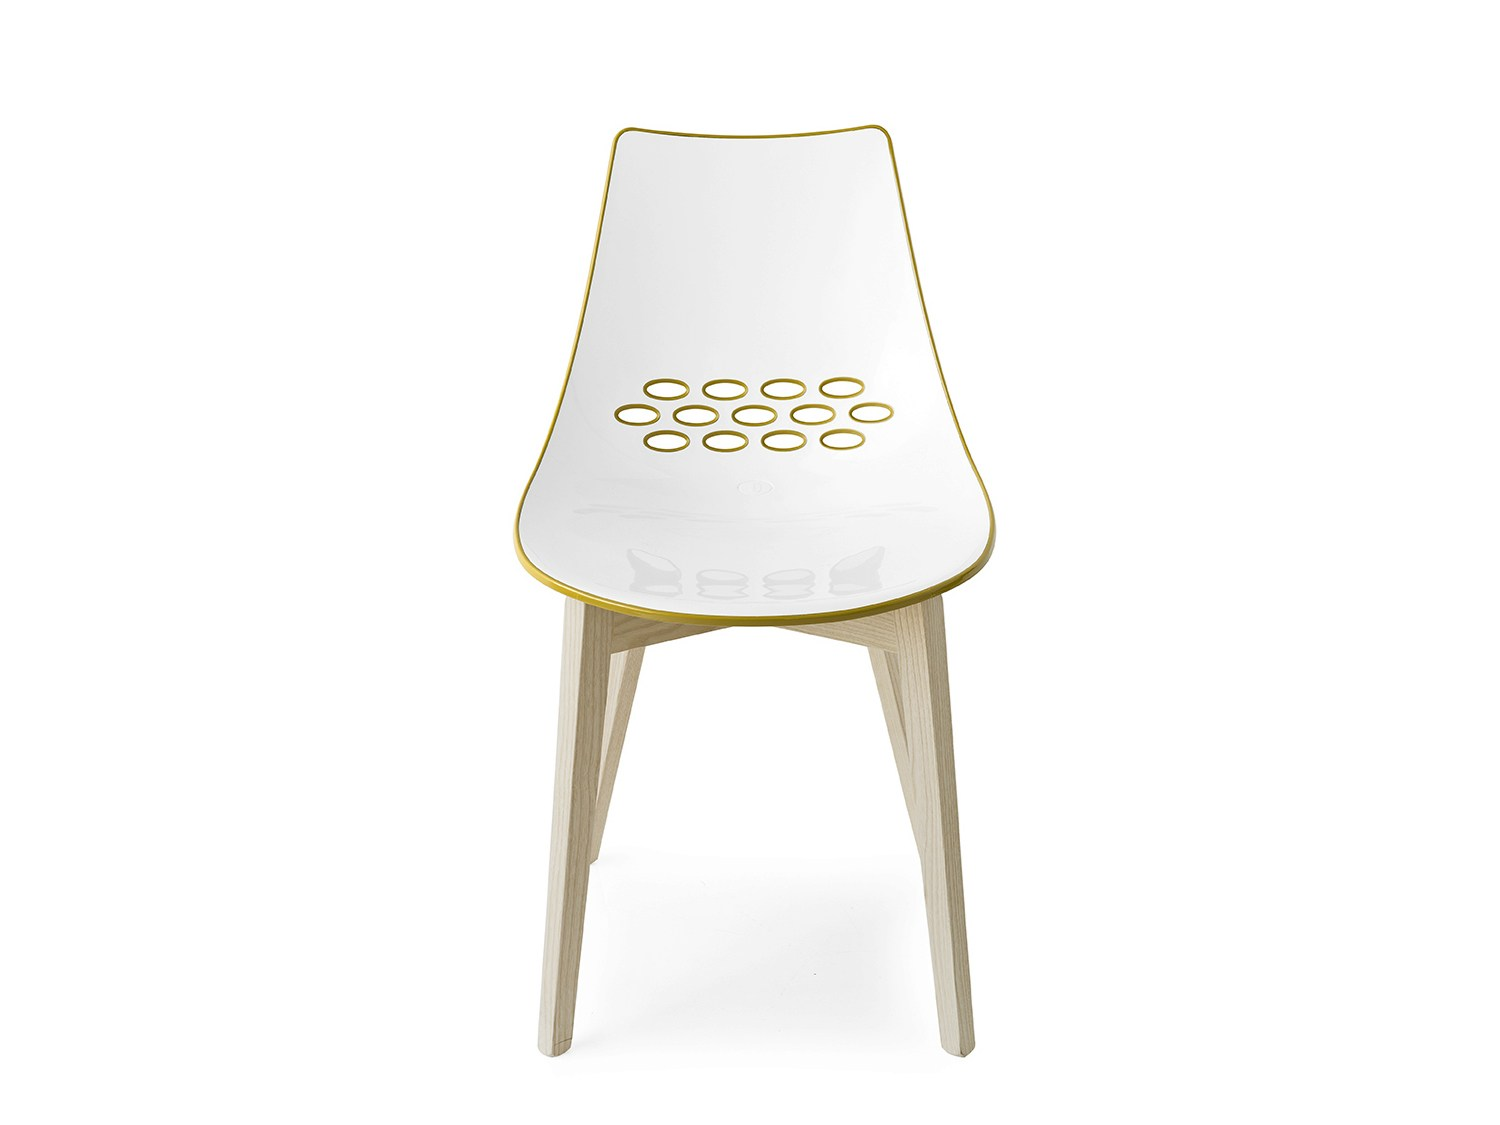 JAM W Dining Chair by Archirivolto for Calligaris